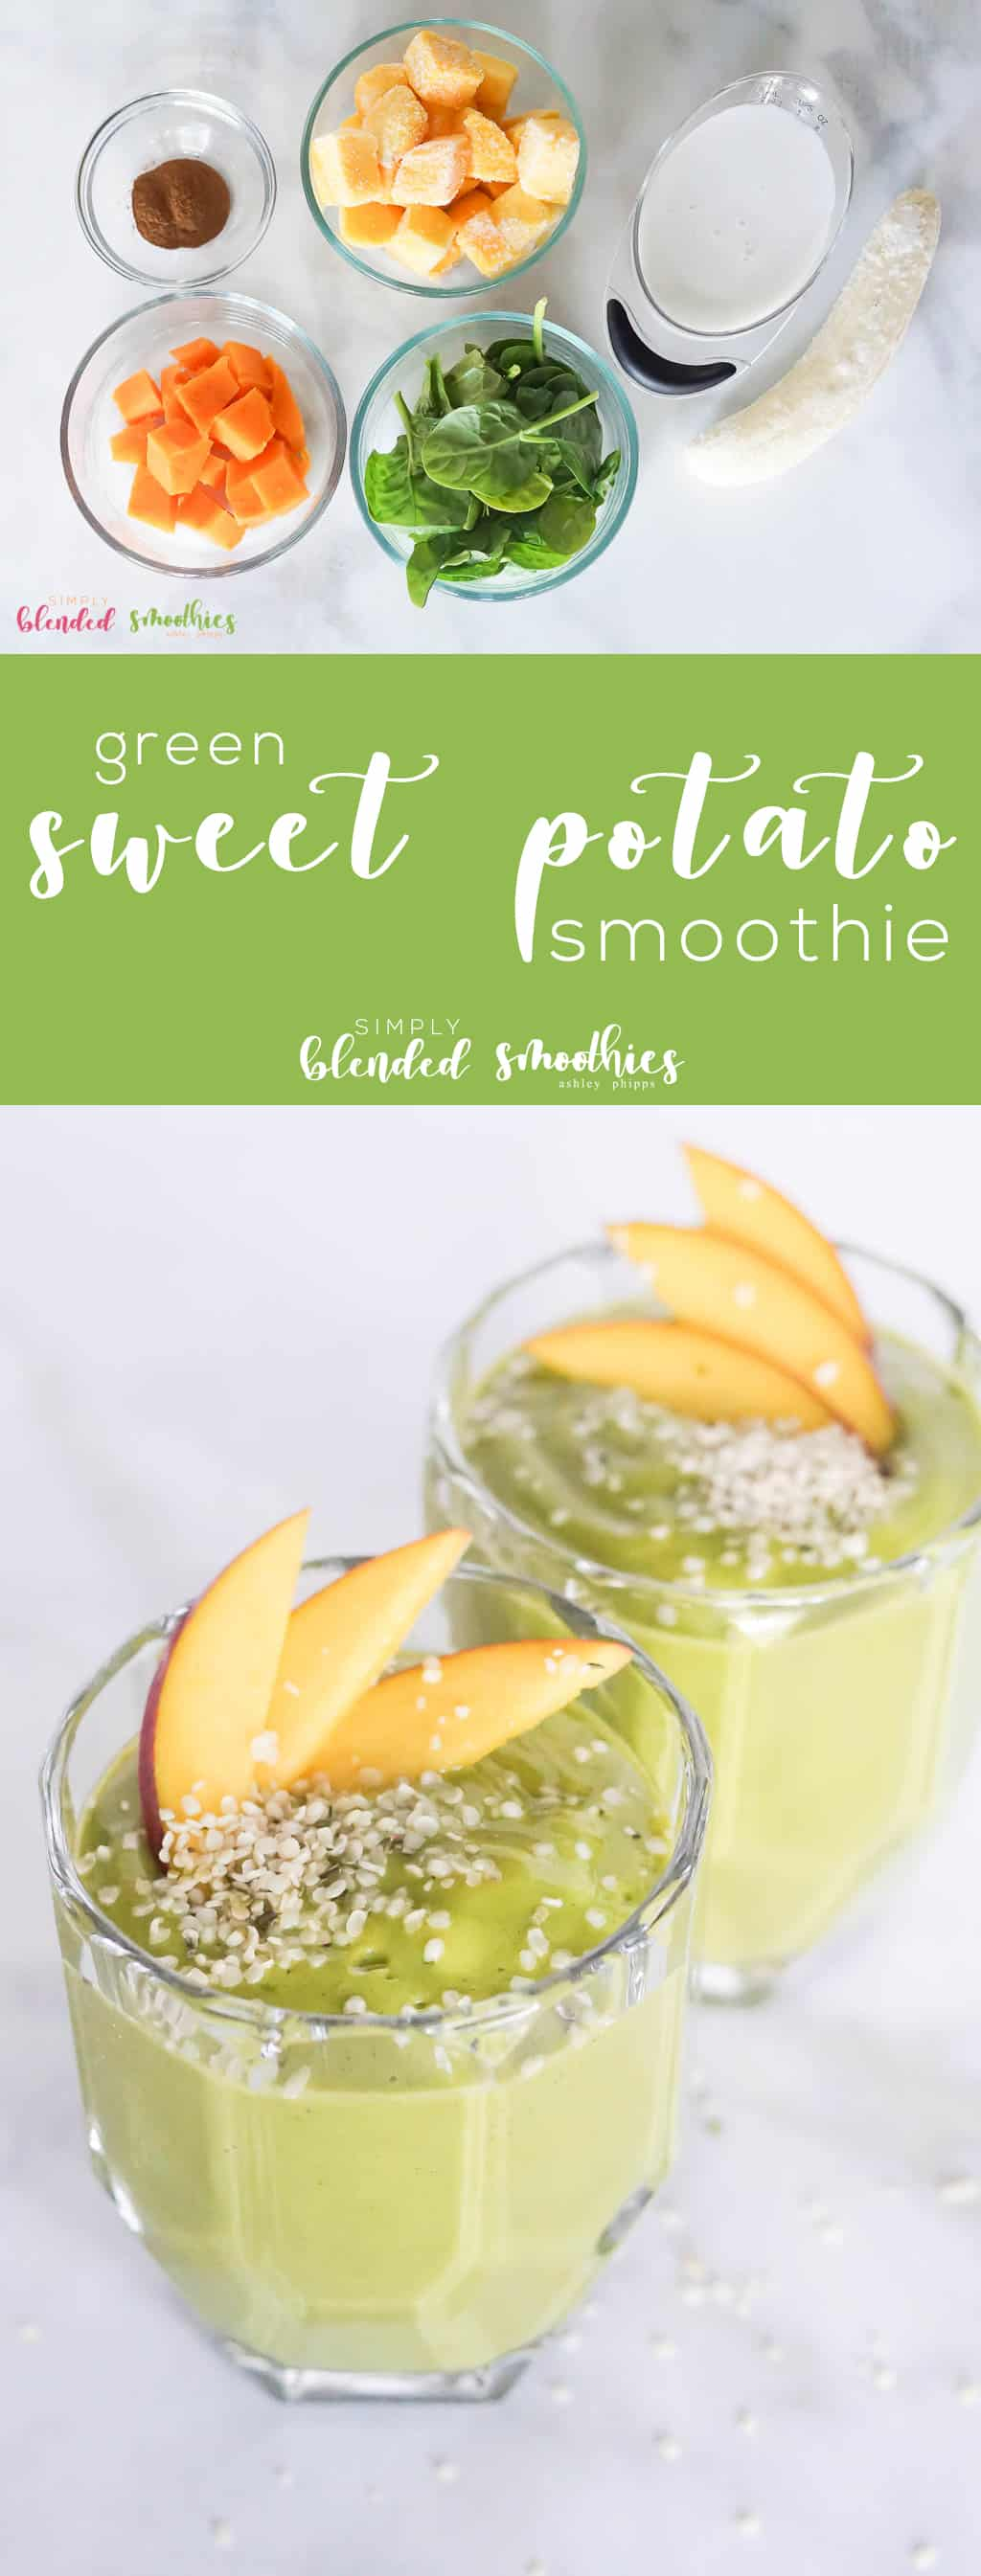 Green Sweet Potato Smoothie - this healthy and delicious green smoothie tastes just like fall